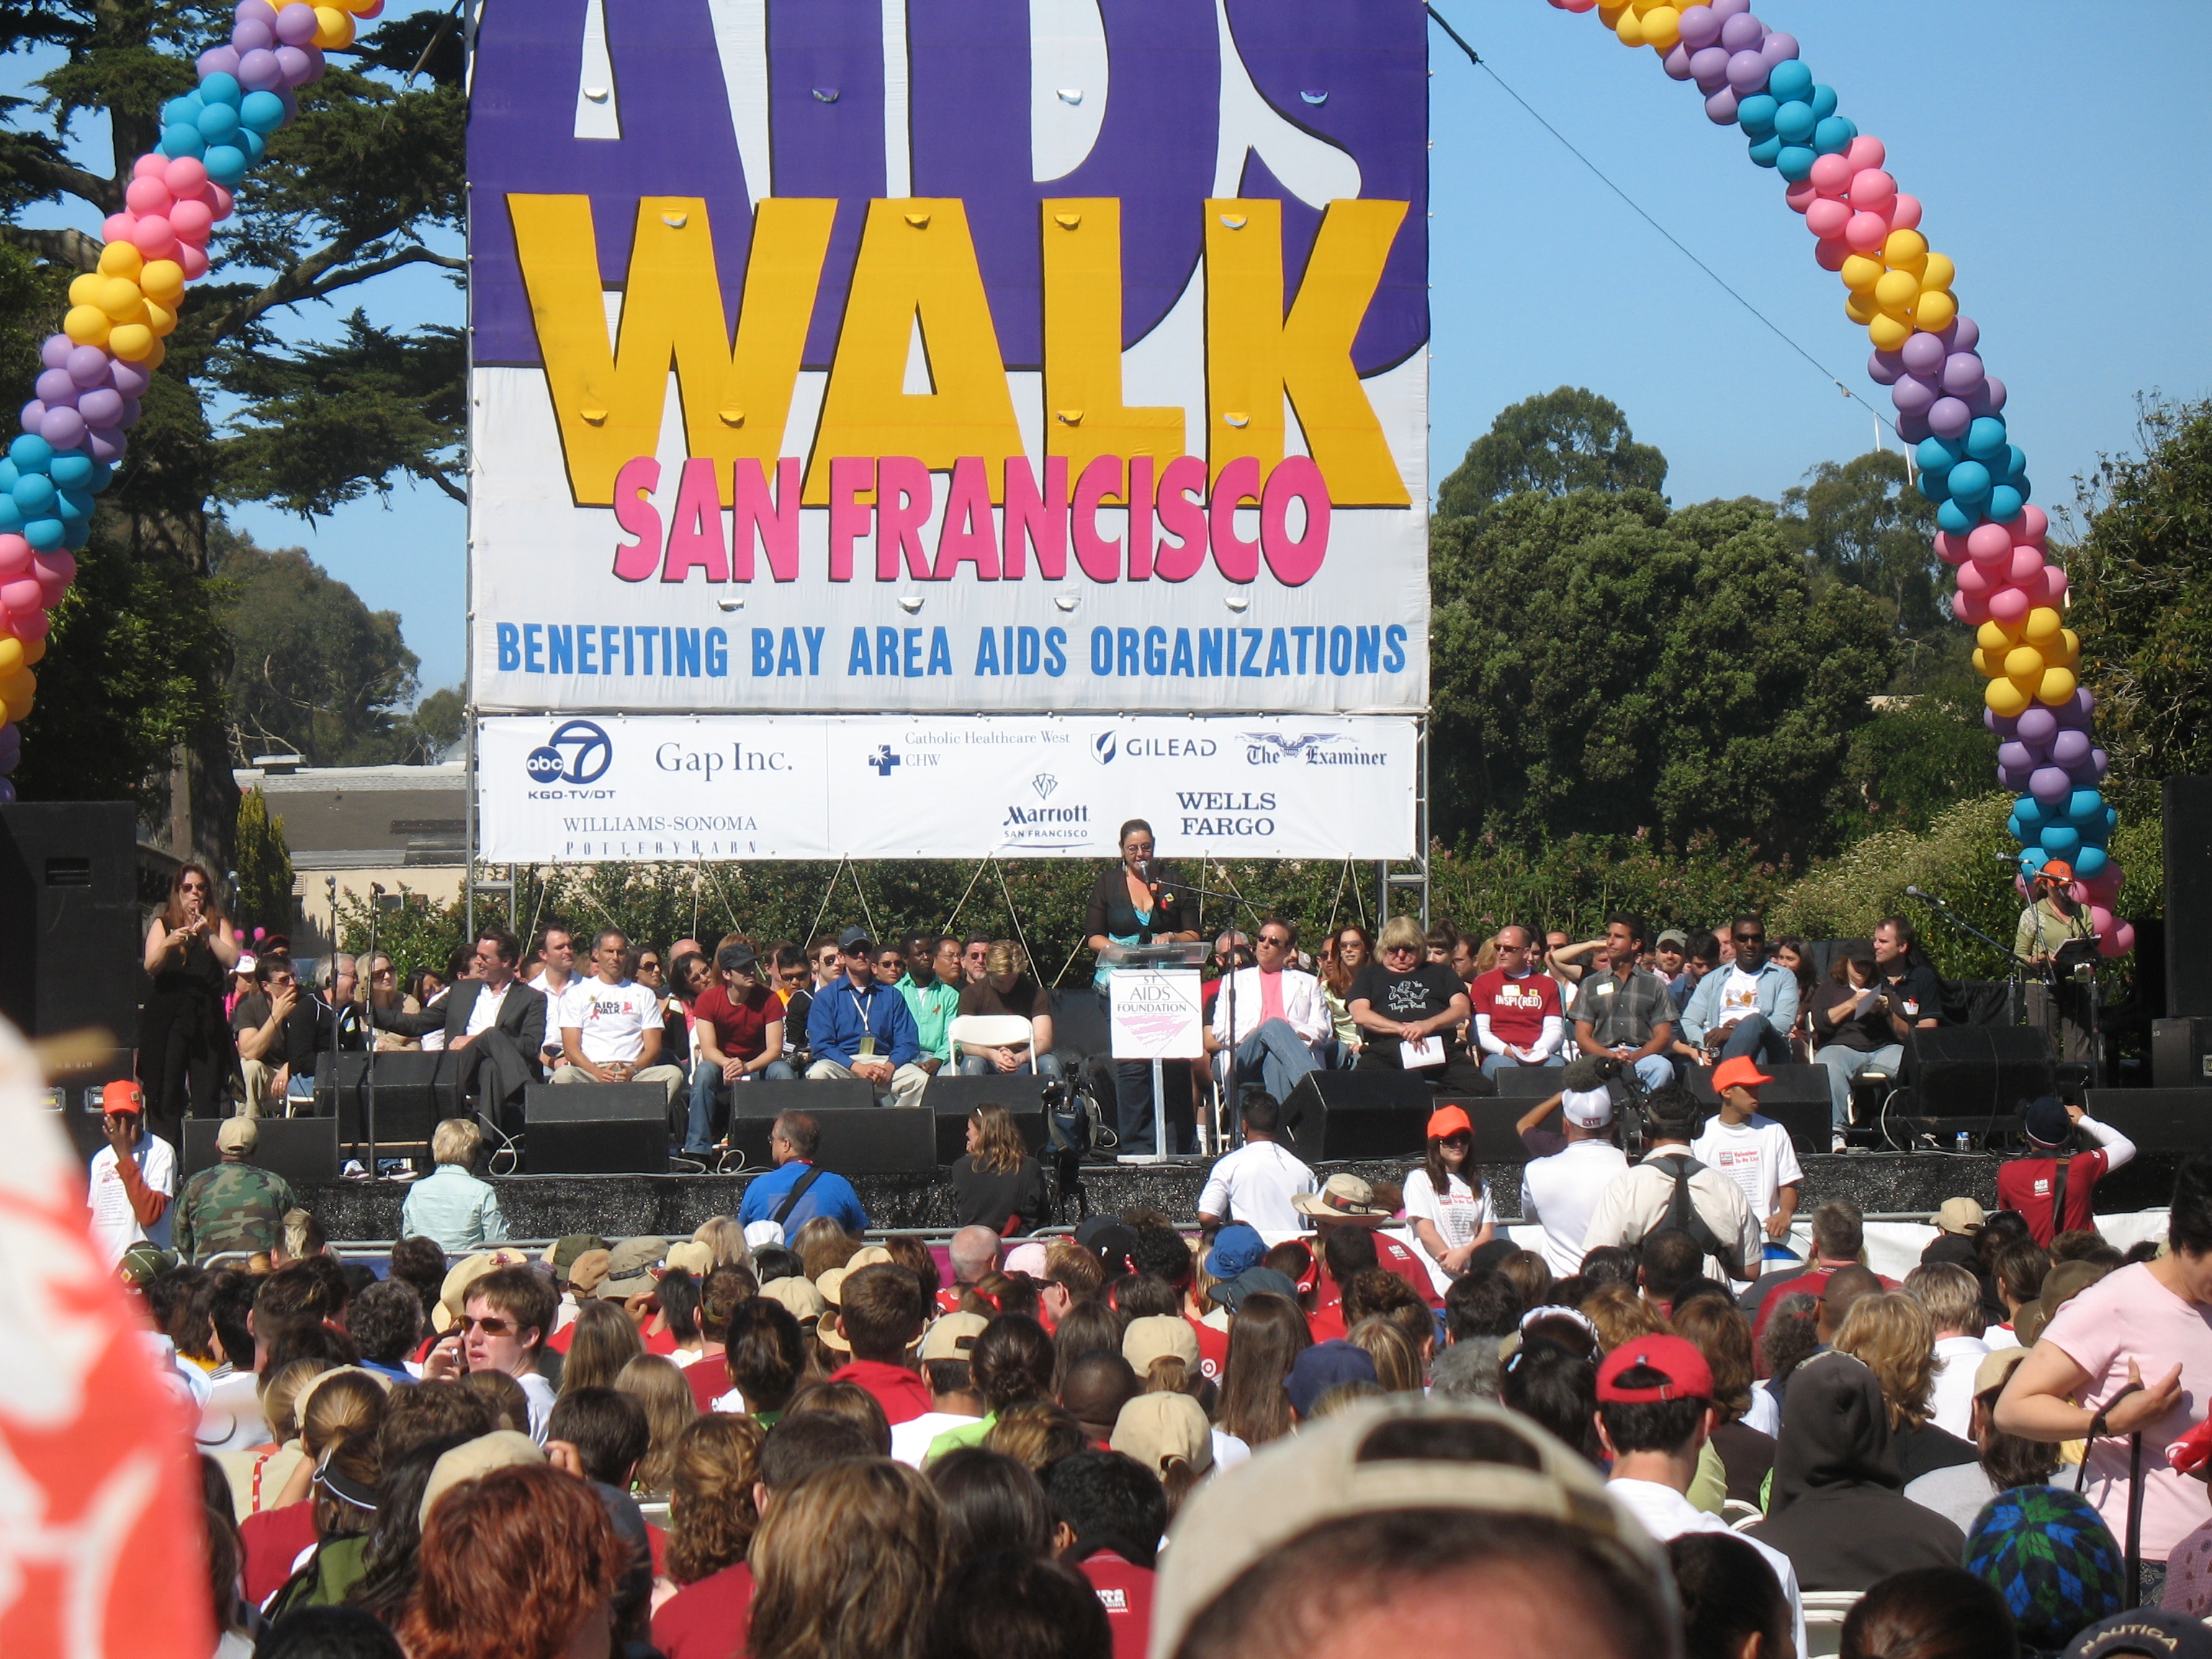 The 29th annual AIDS Walk San Francisco takes place this Sunday, July 18, at Golden Gate Park.